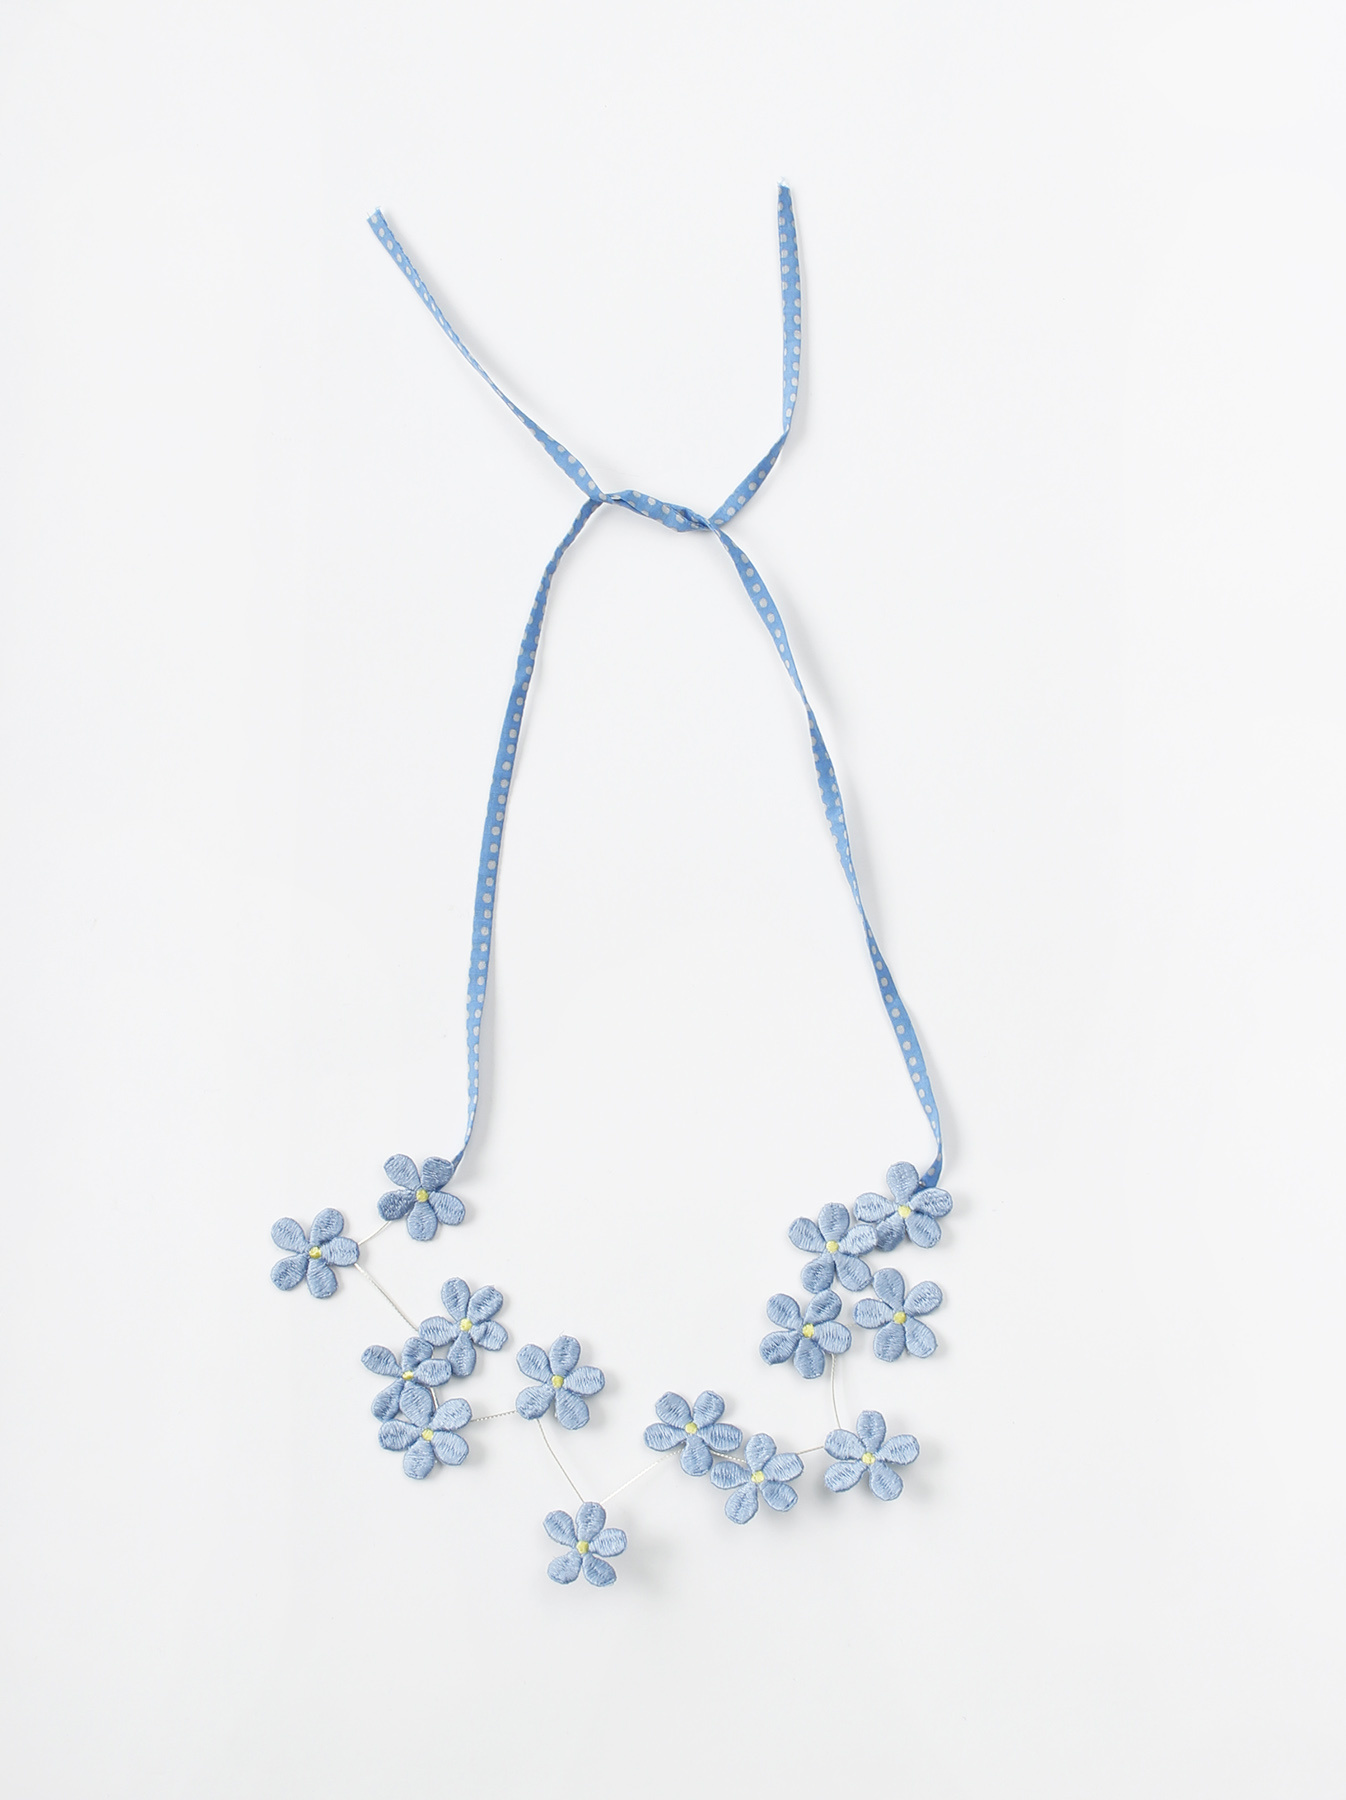 WH Silk Flower Embroidery Necklace-5